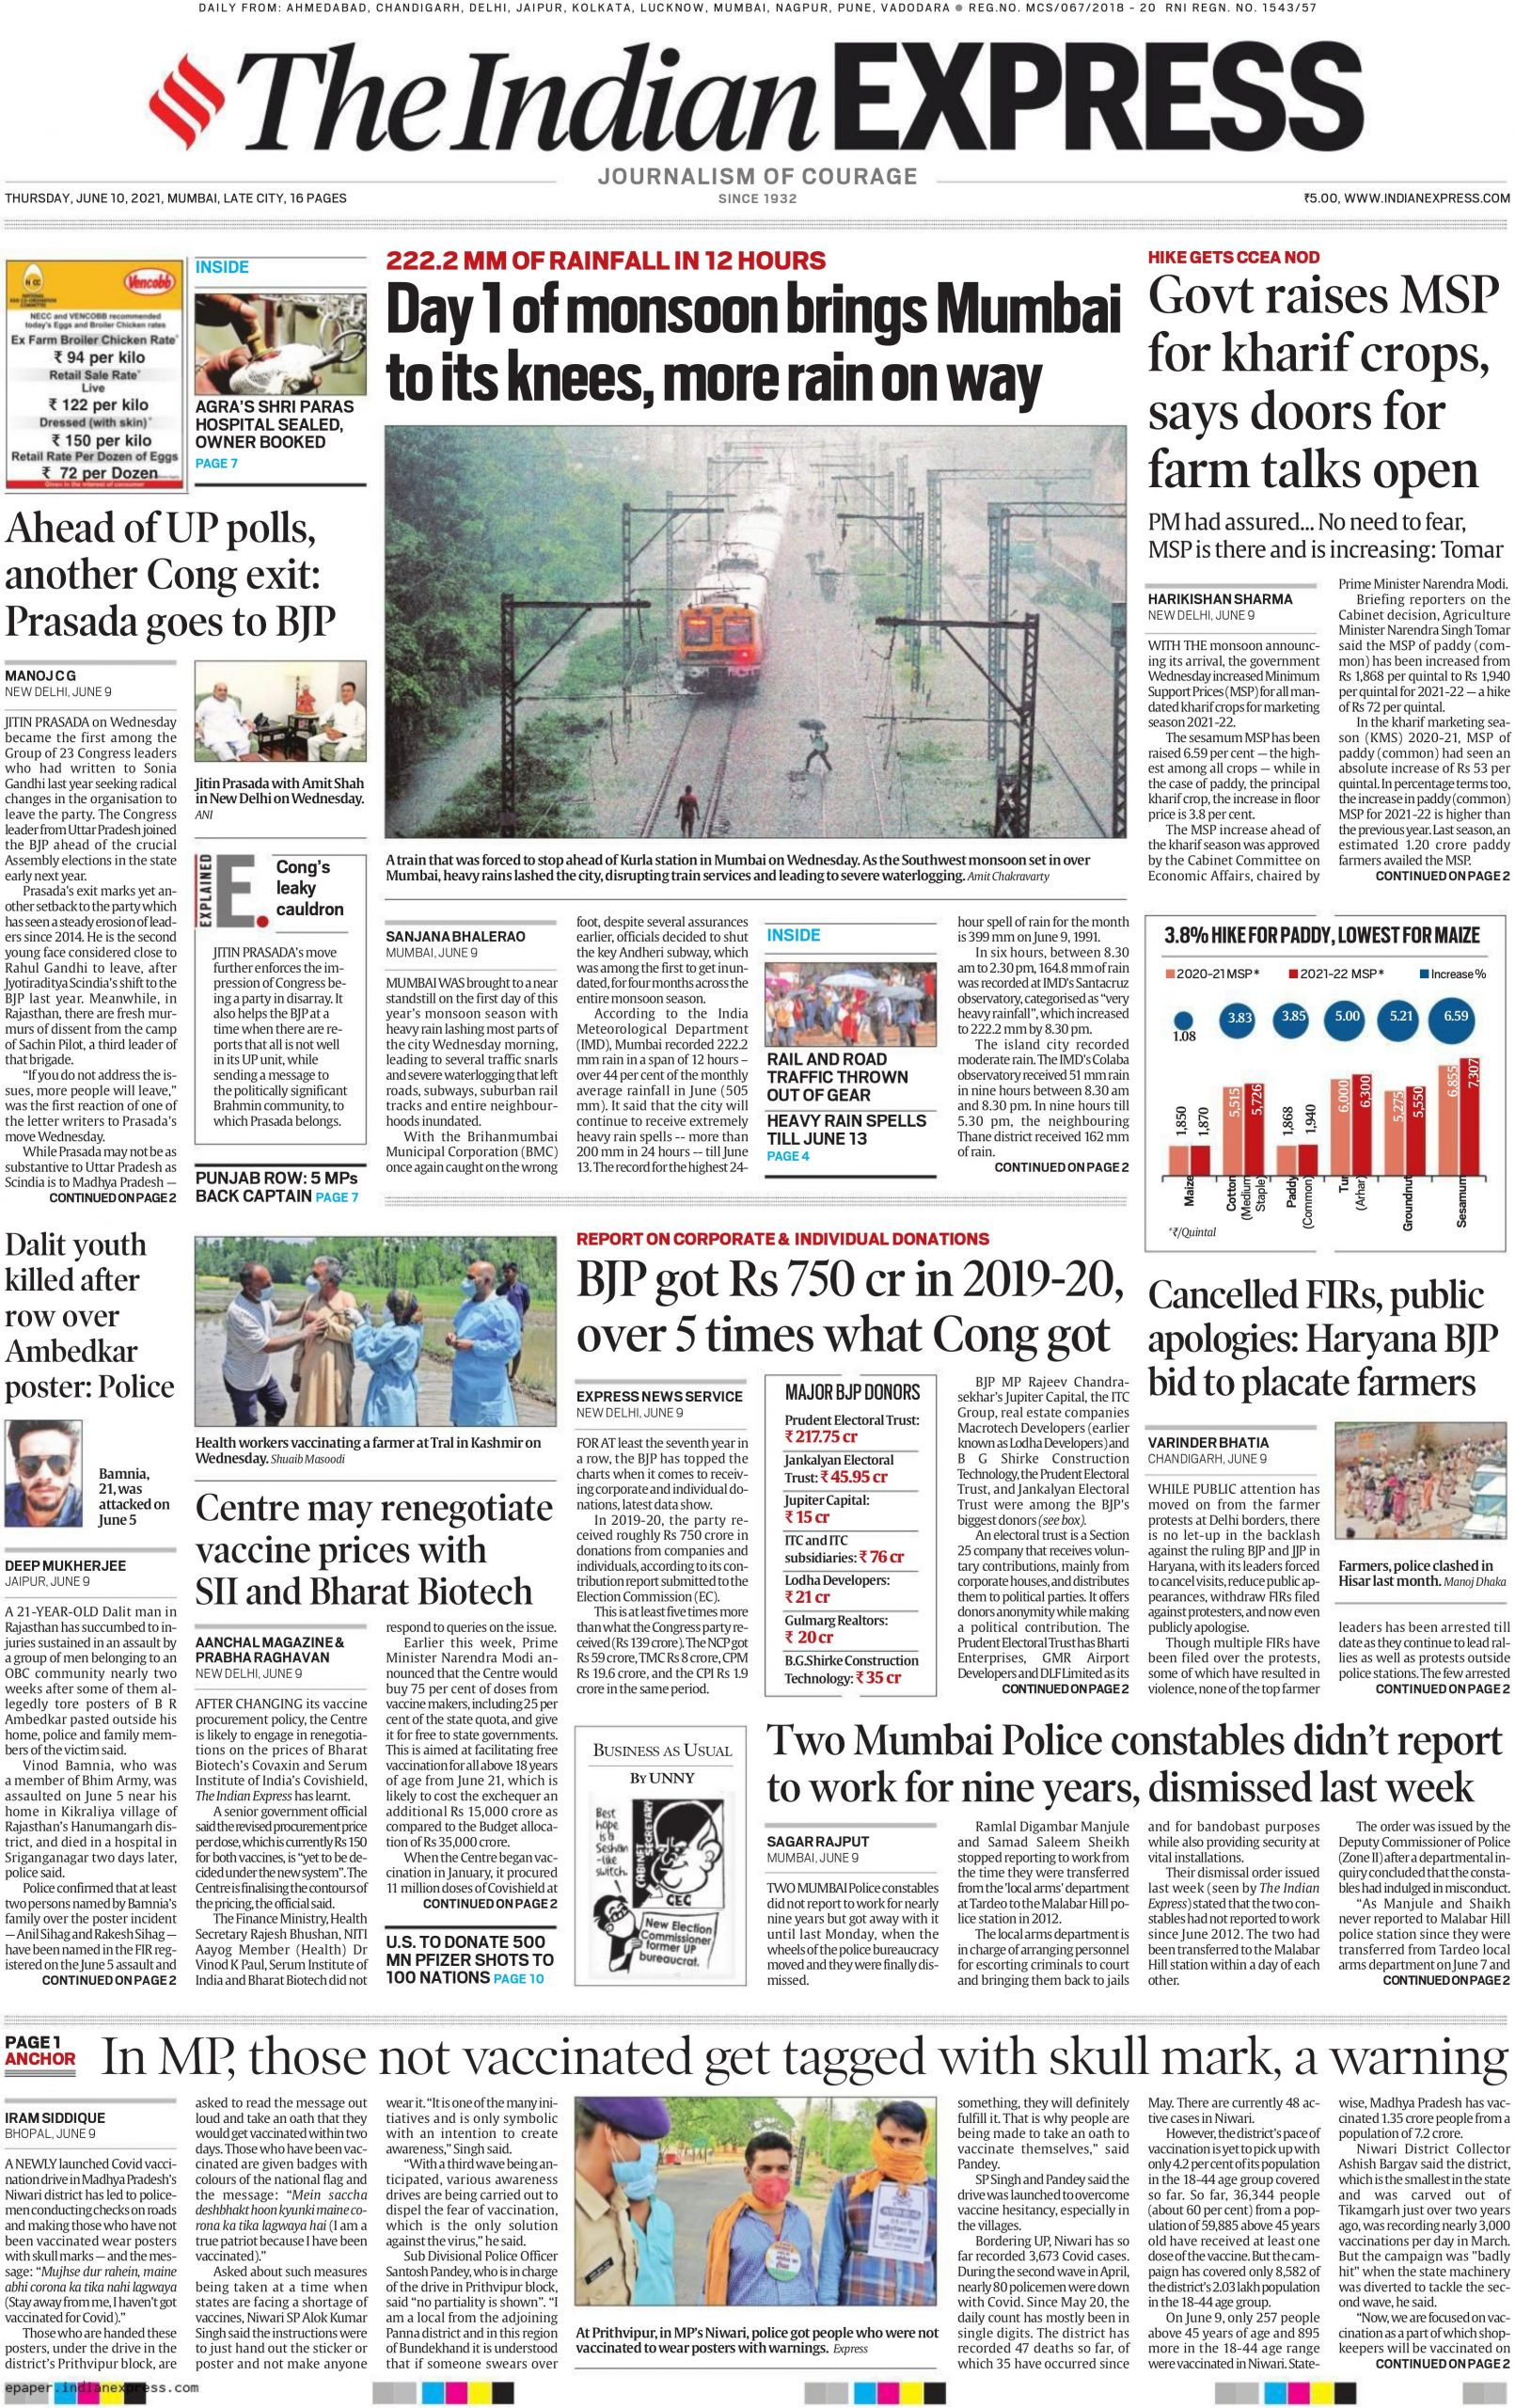 The Indian Express 10th June 2021